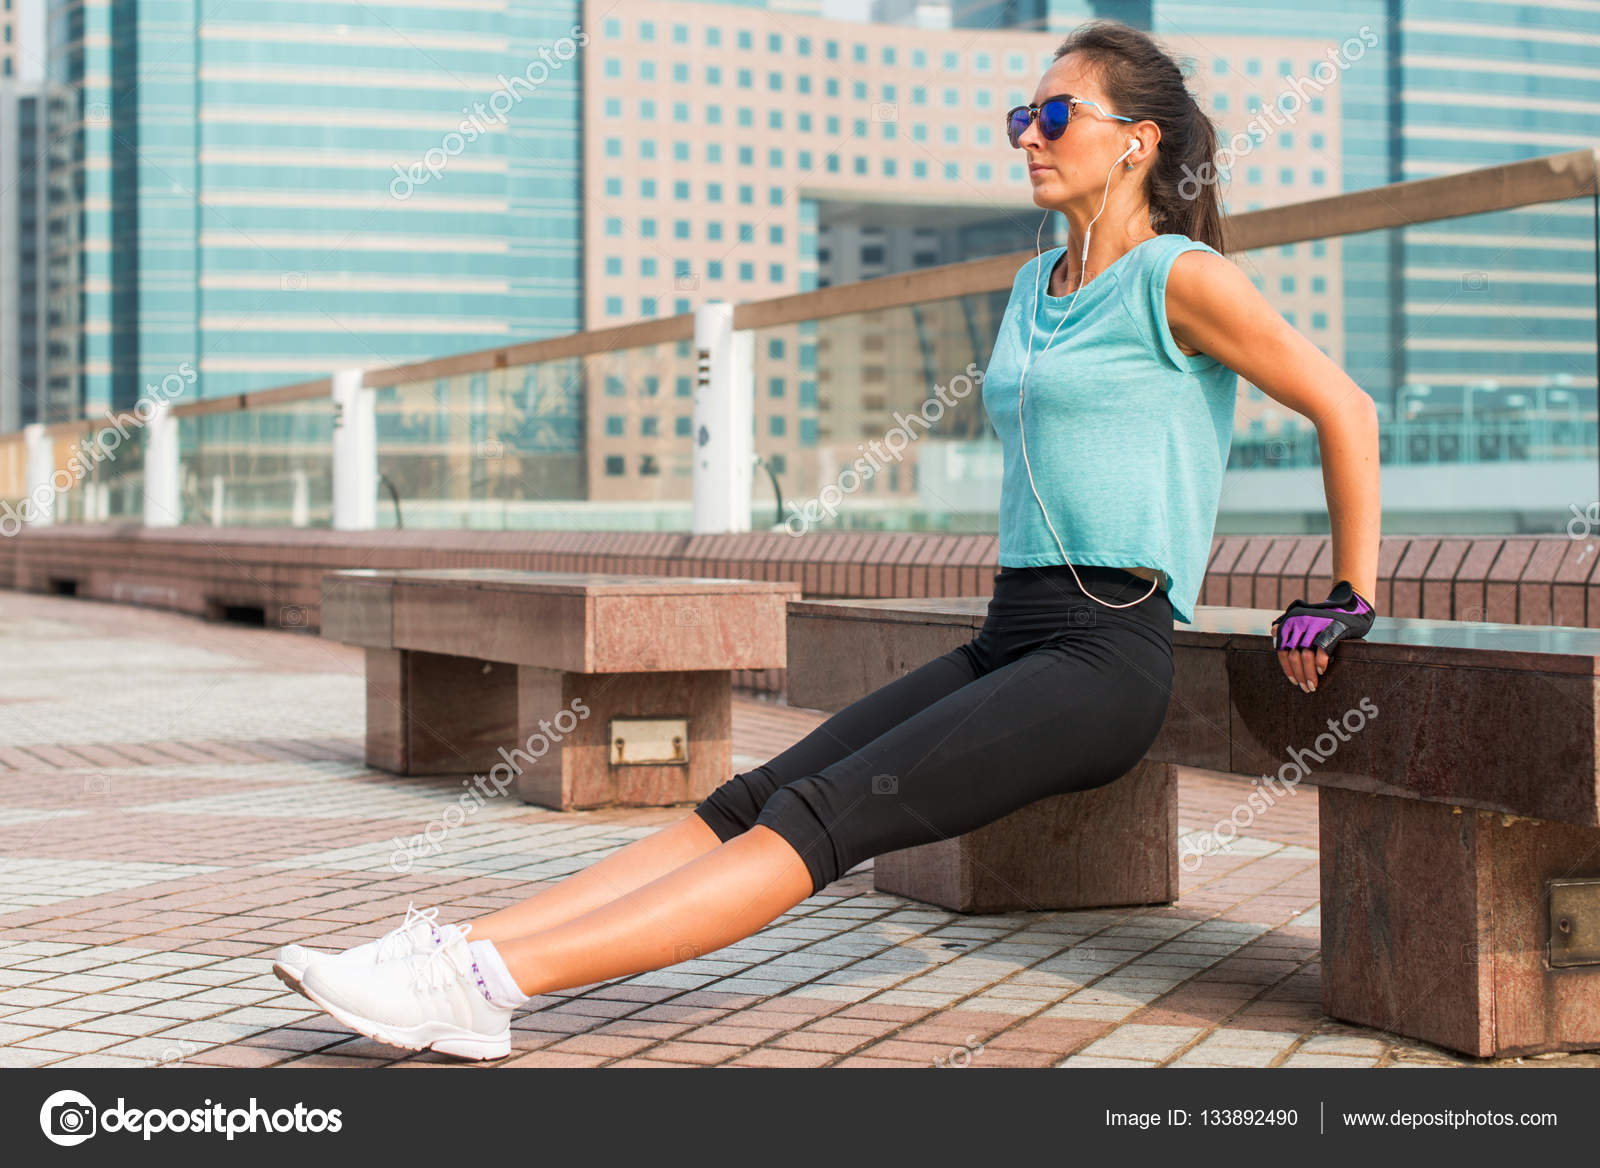 Marvelous Fit Woman Doing Triceps Bench Dips Exercise Stock Photo Creativecarmelina Interior Chair Design Creativecarmelinacom